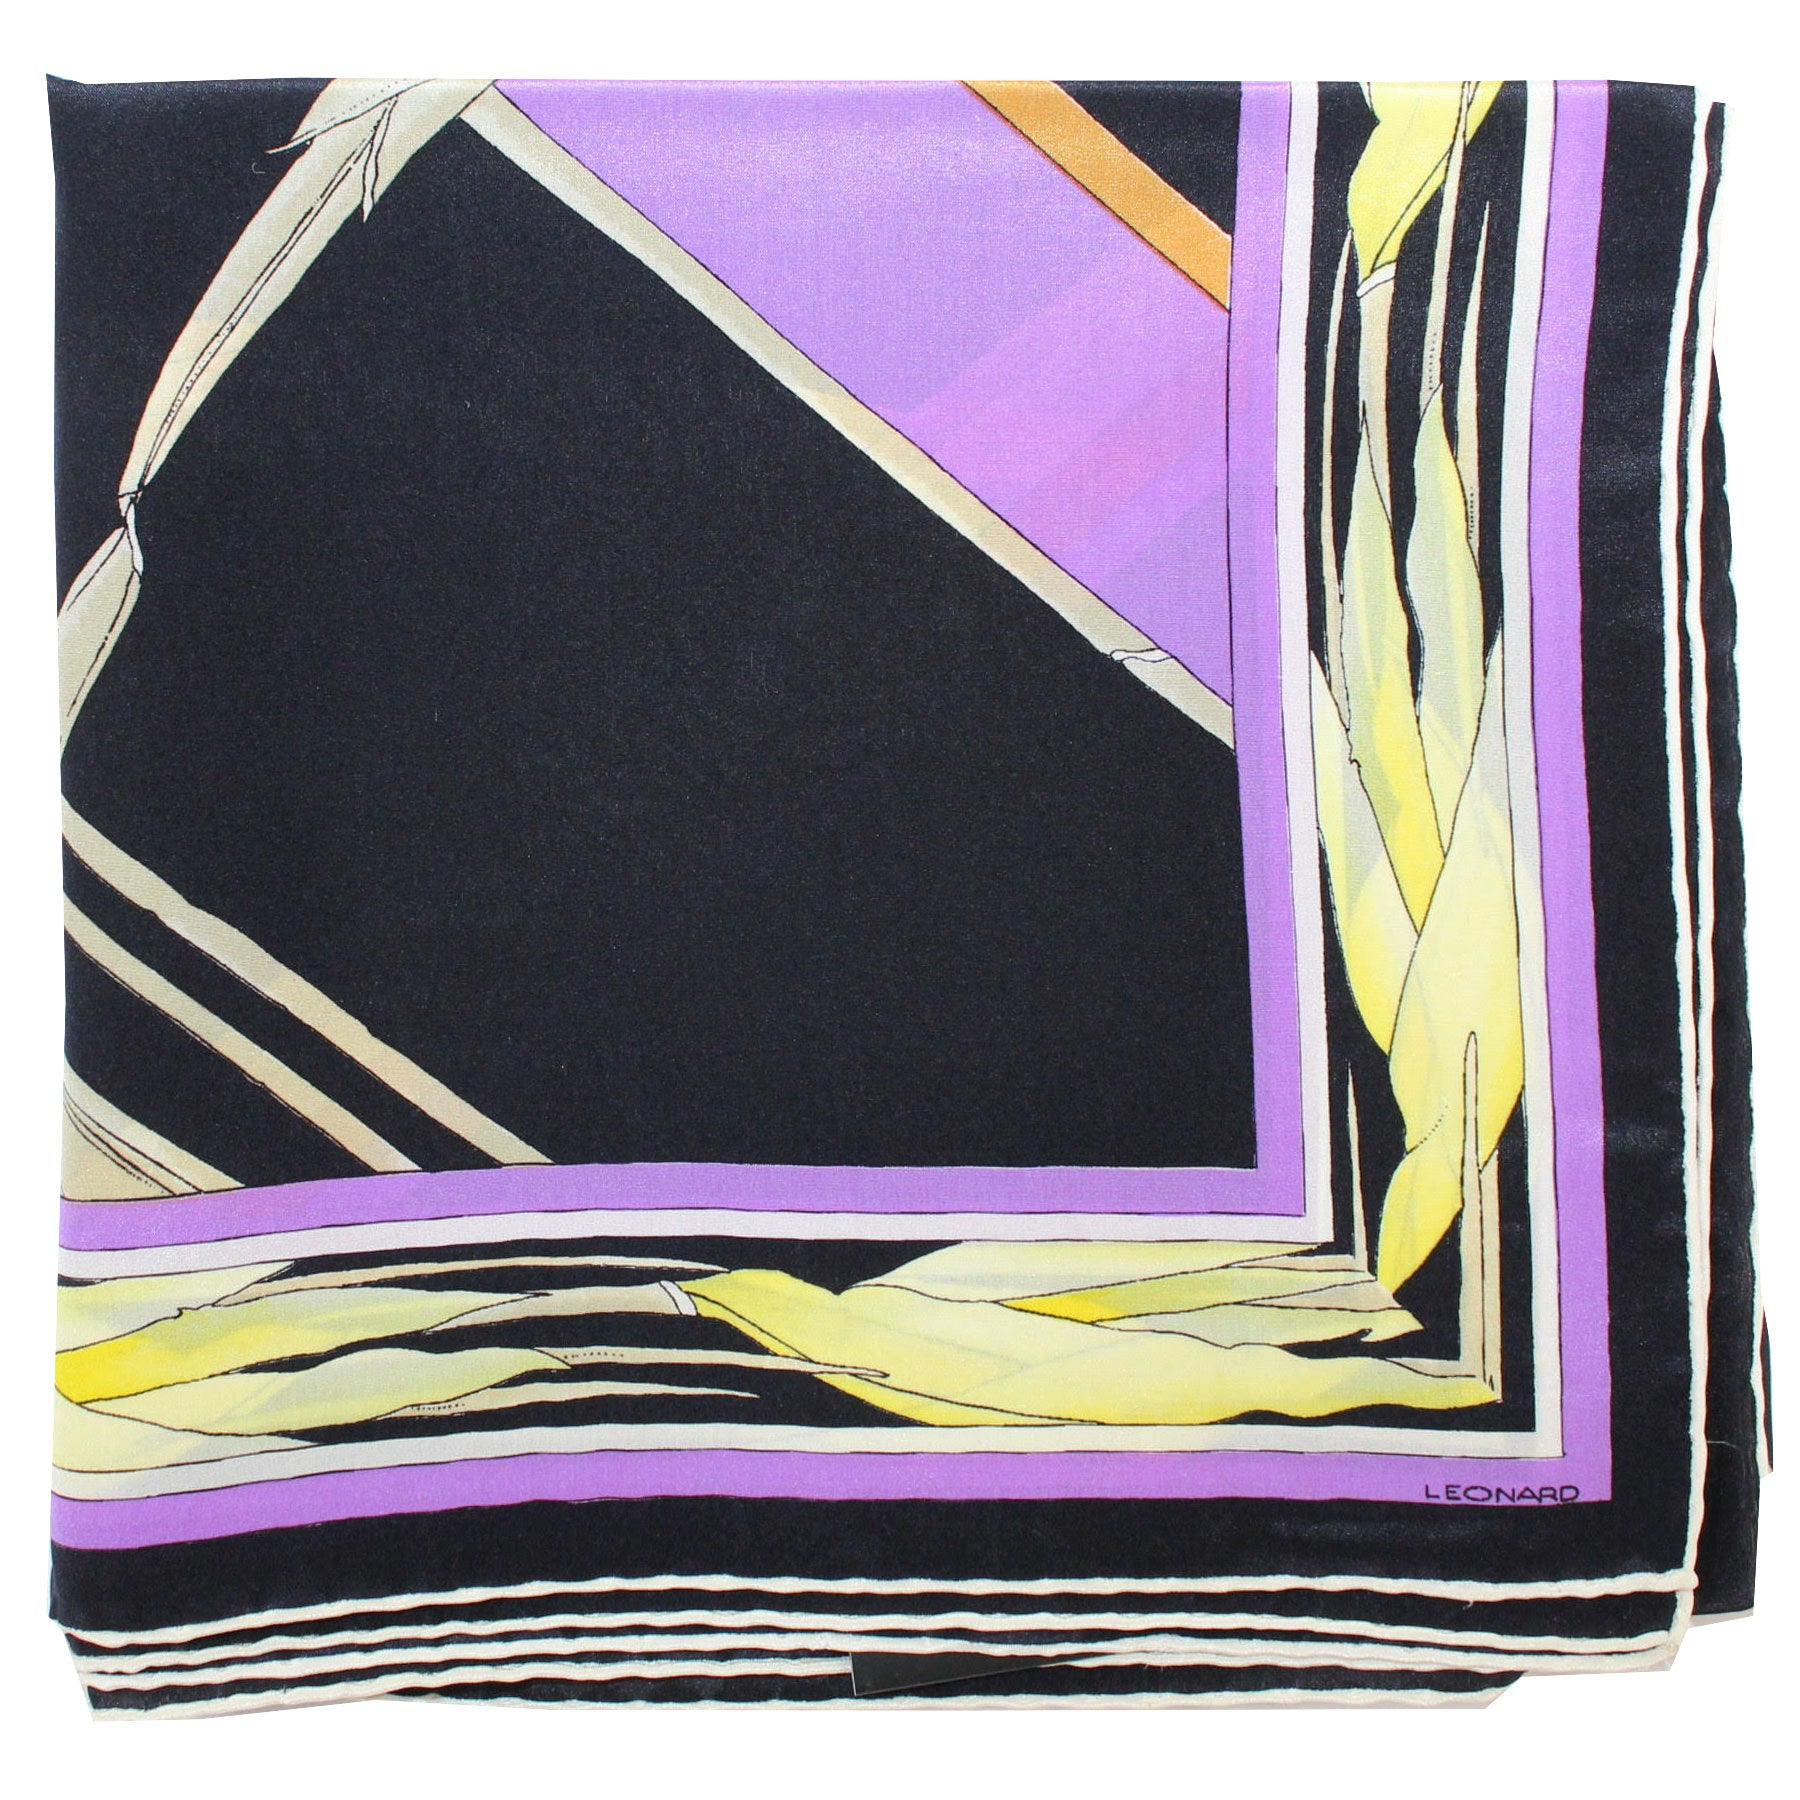 Leonard Paris Scarf Black Lilac Yellow Floral Design - Large Square Silk Scarf Vintage SALE